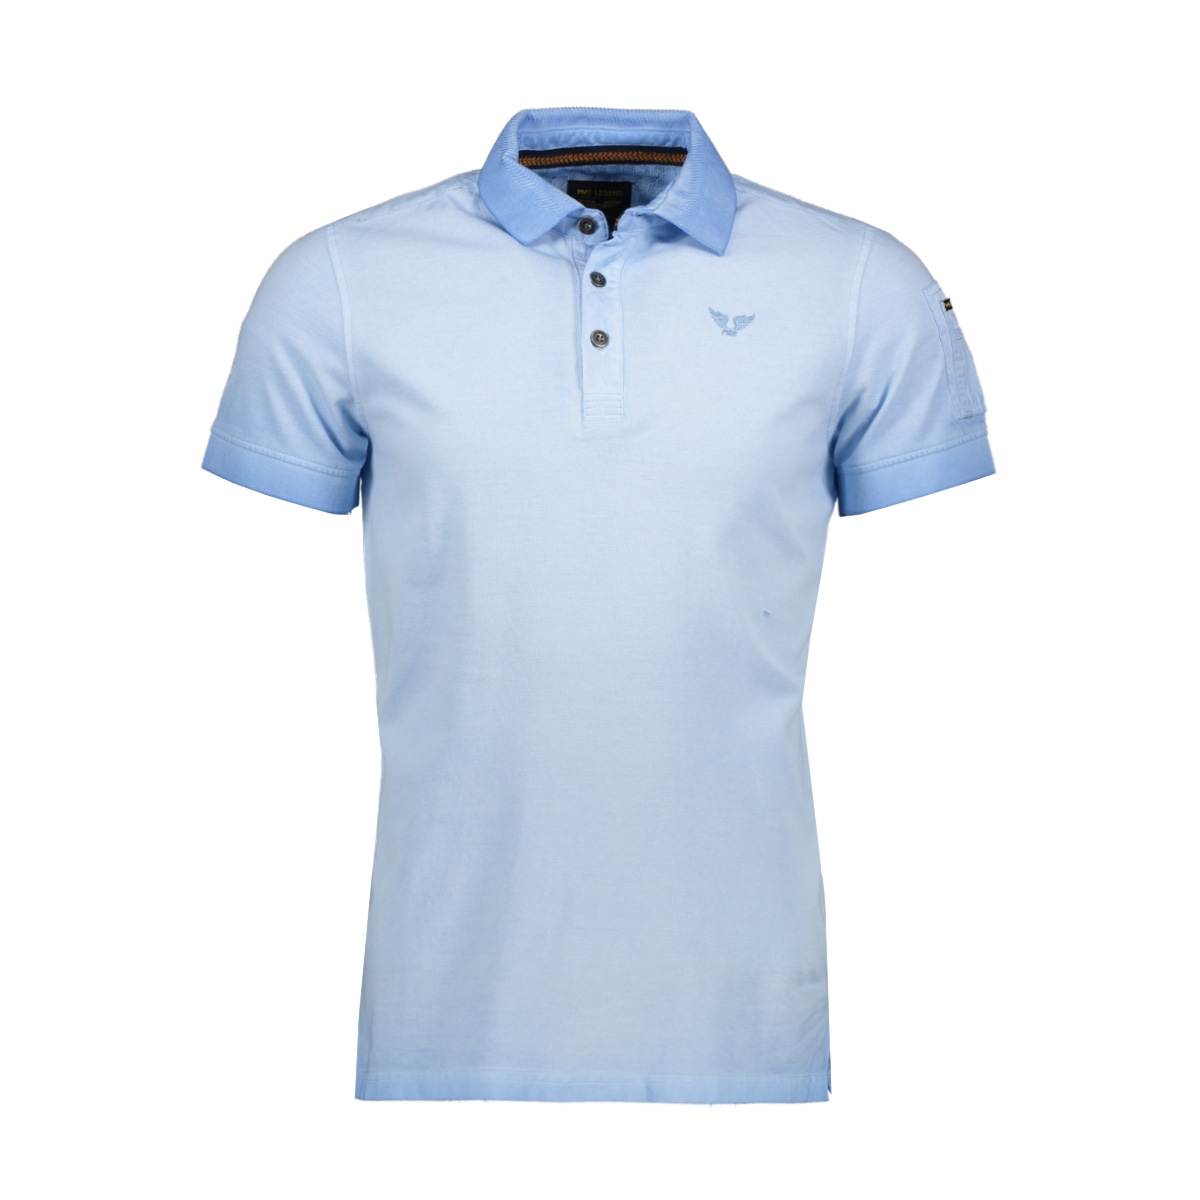 short sleeve polo ppss193851 pme legend polo 5094